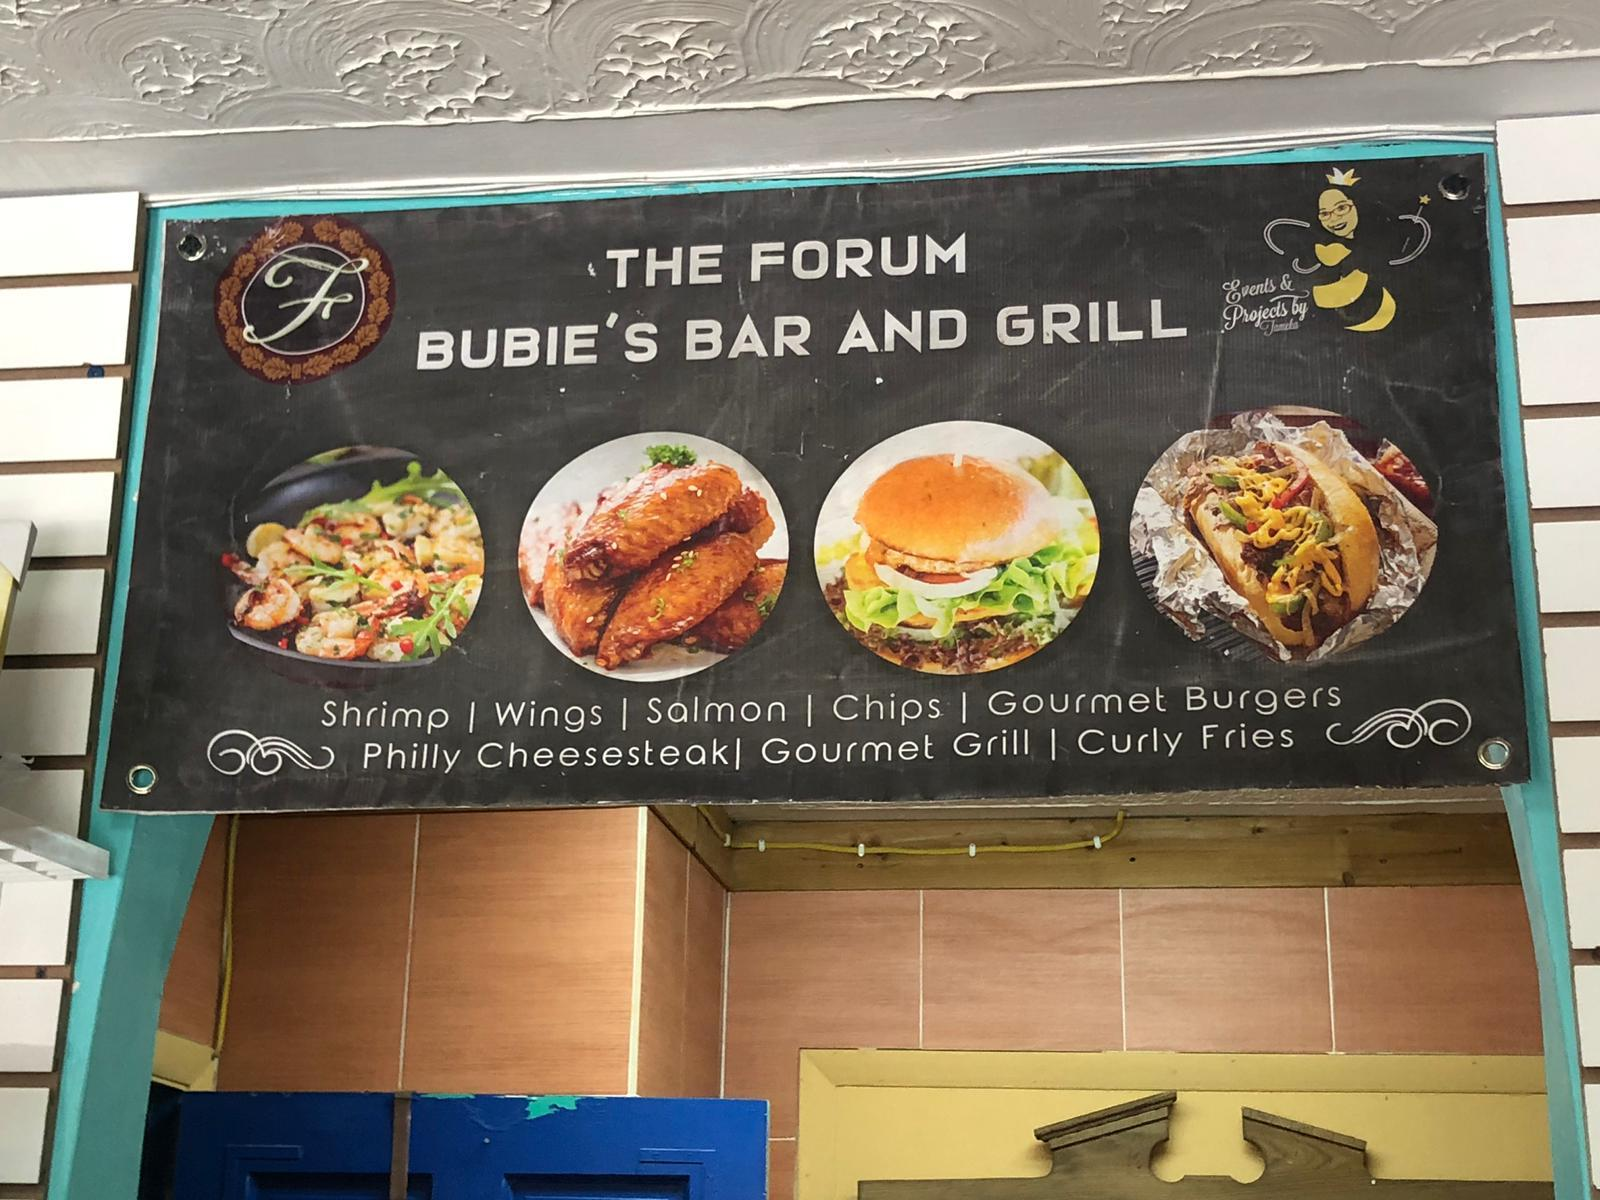 Bubie's Bar & Grill